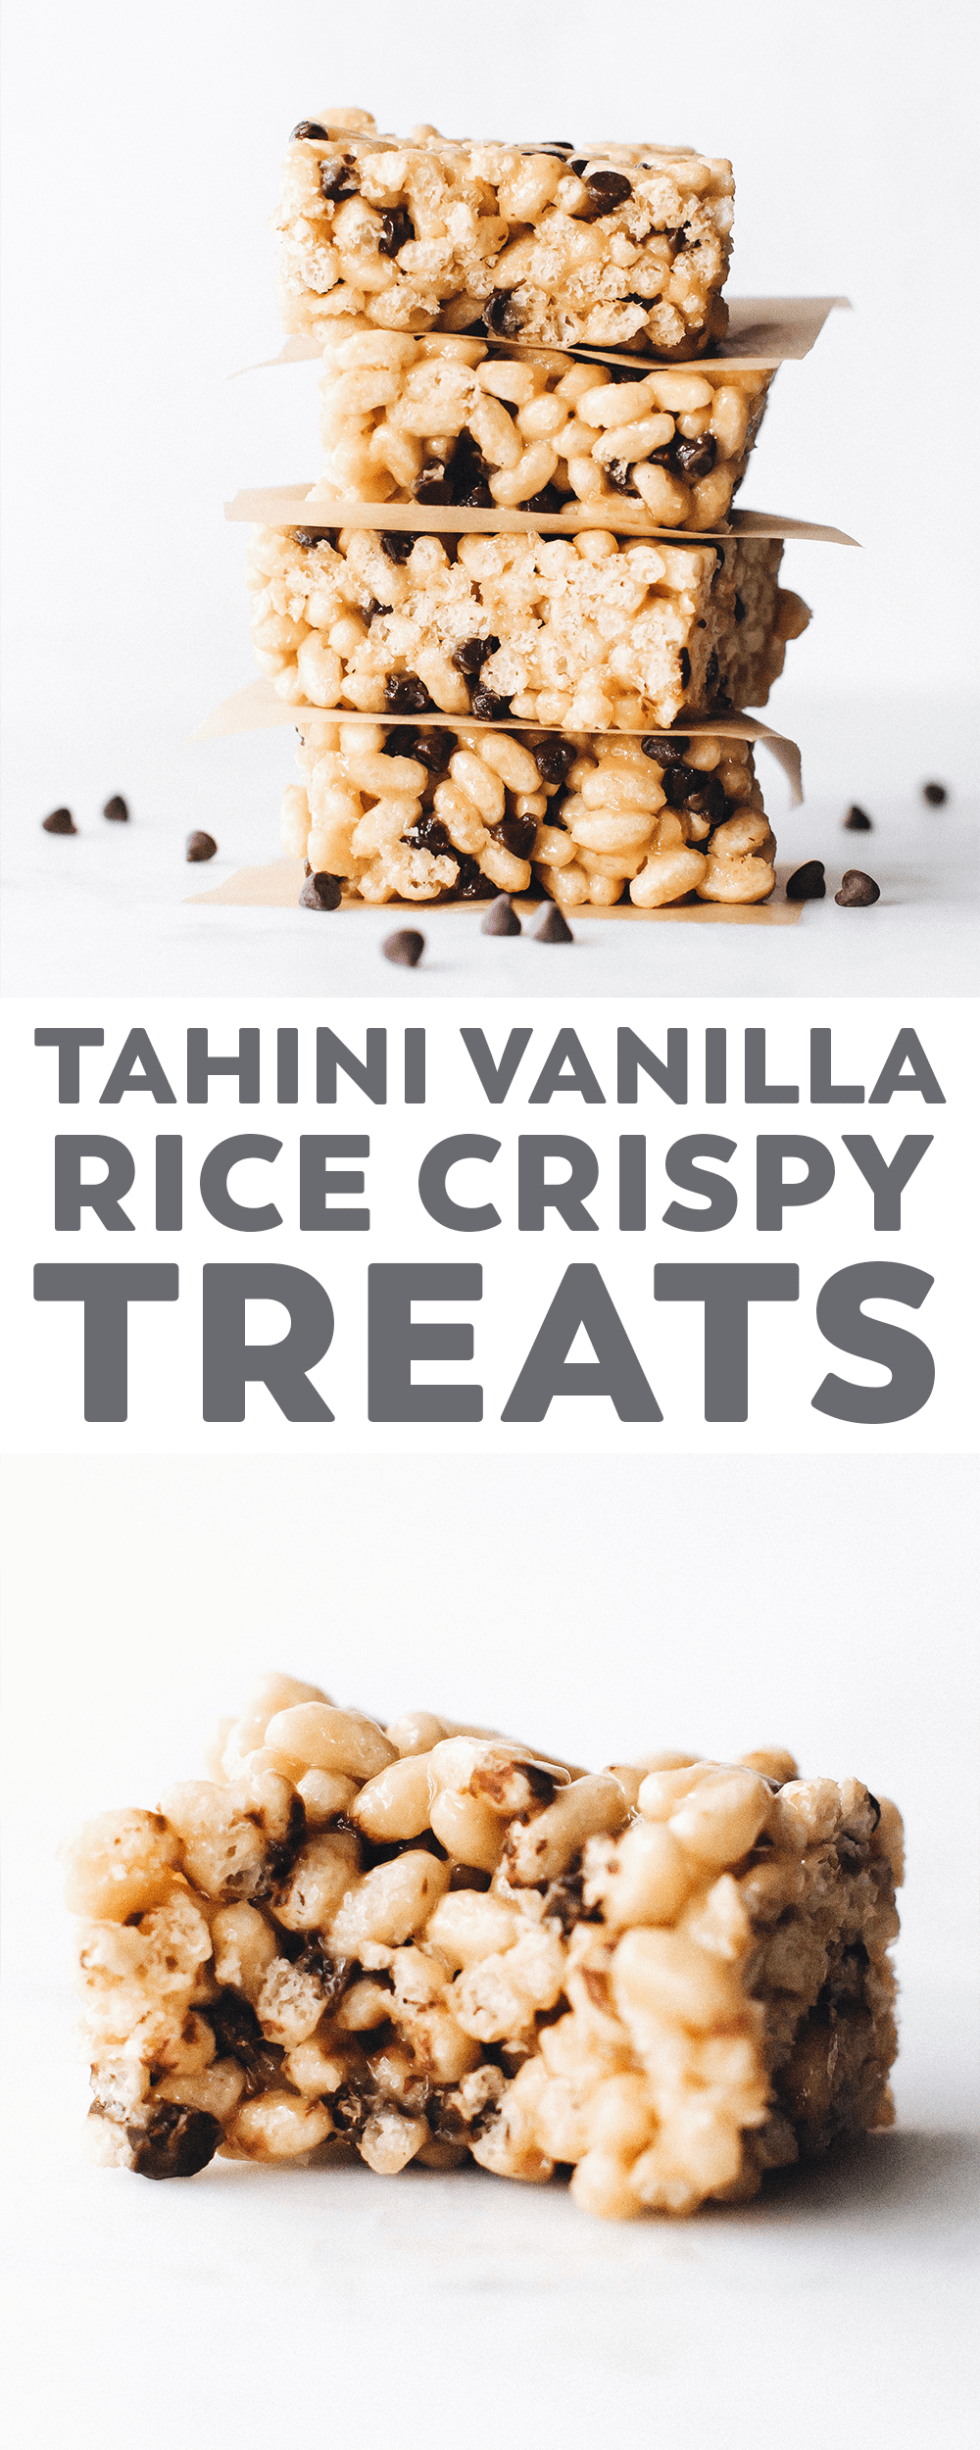 Vanilla Tahini Rice Crispy Treats – a twist on the cereal snack favorite with savory tahini, sweet vanilla, a pinch of salt, and a yummy sprinkling of chocolate chips! #vegan #glutenfree #easyrecipe #snack #chocolate #NielsenMasseyPartner